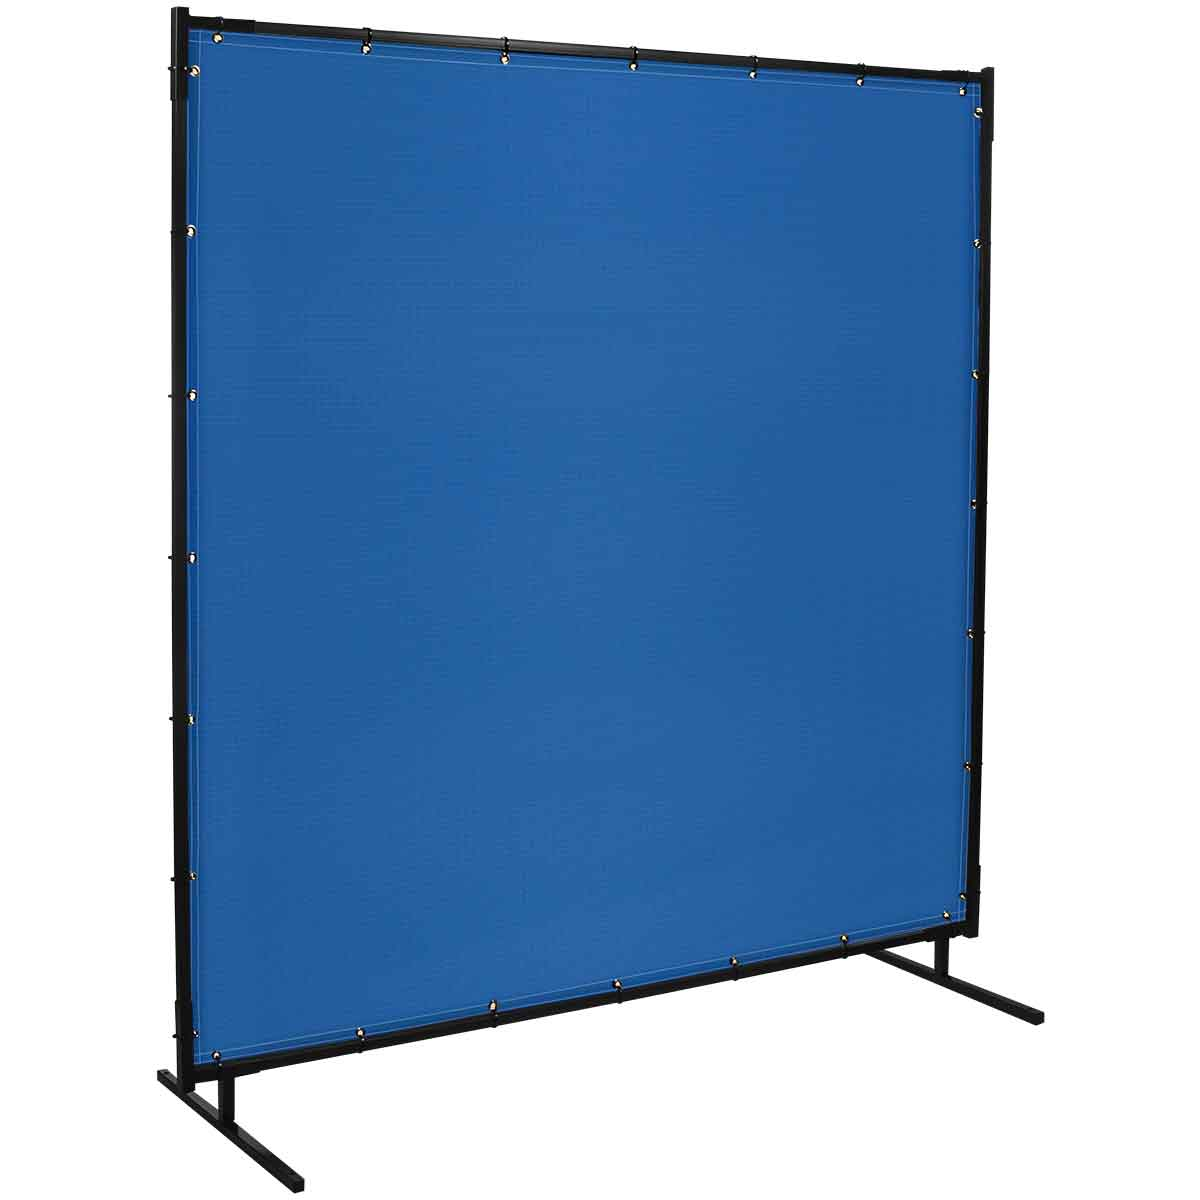 Steiner 535-6X8 Protect-O-Screen Classic with Blue Vinyl Laminated Polyester Welding Curtain with Frame by Steiner